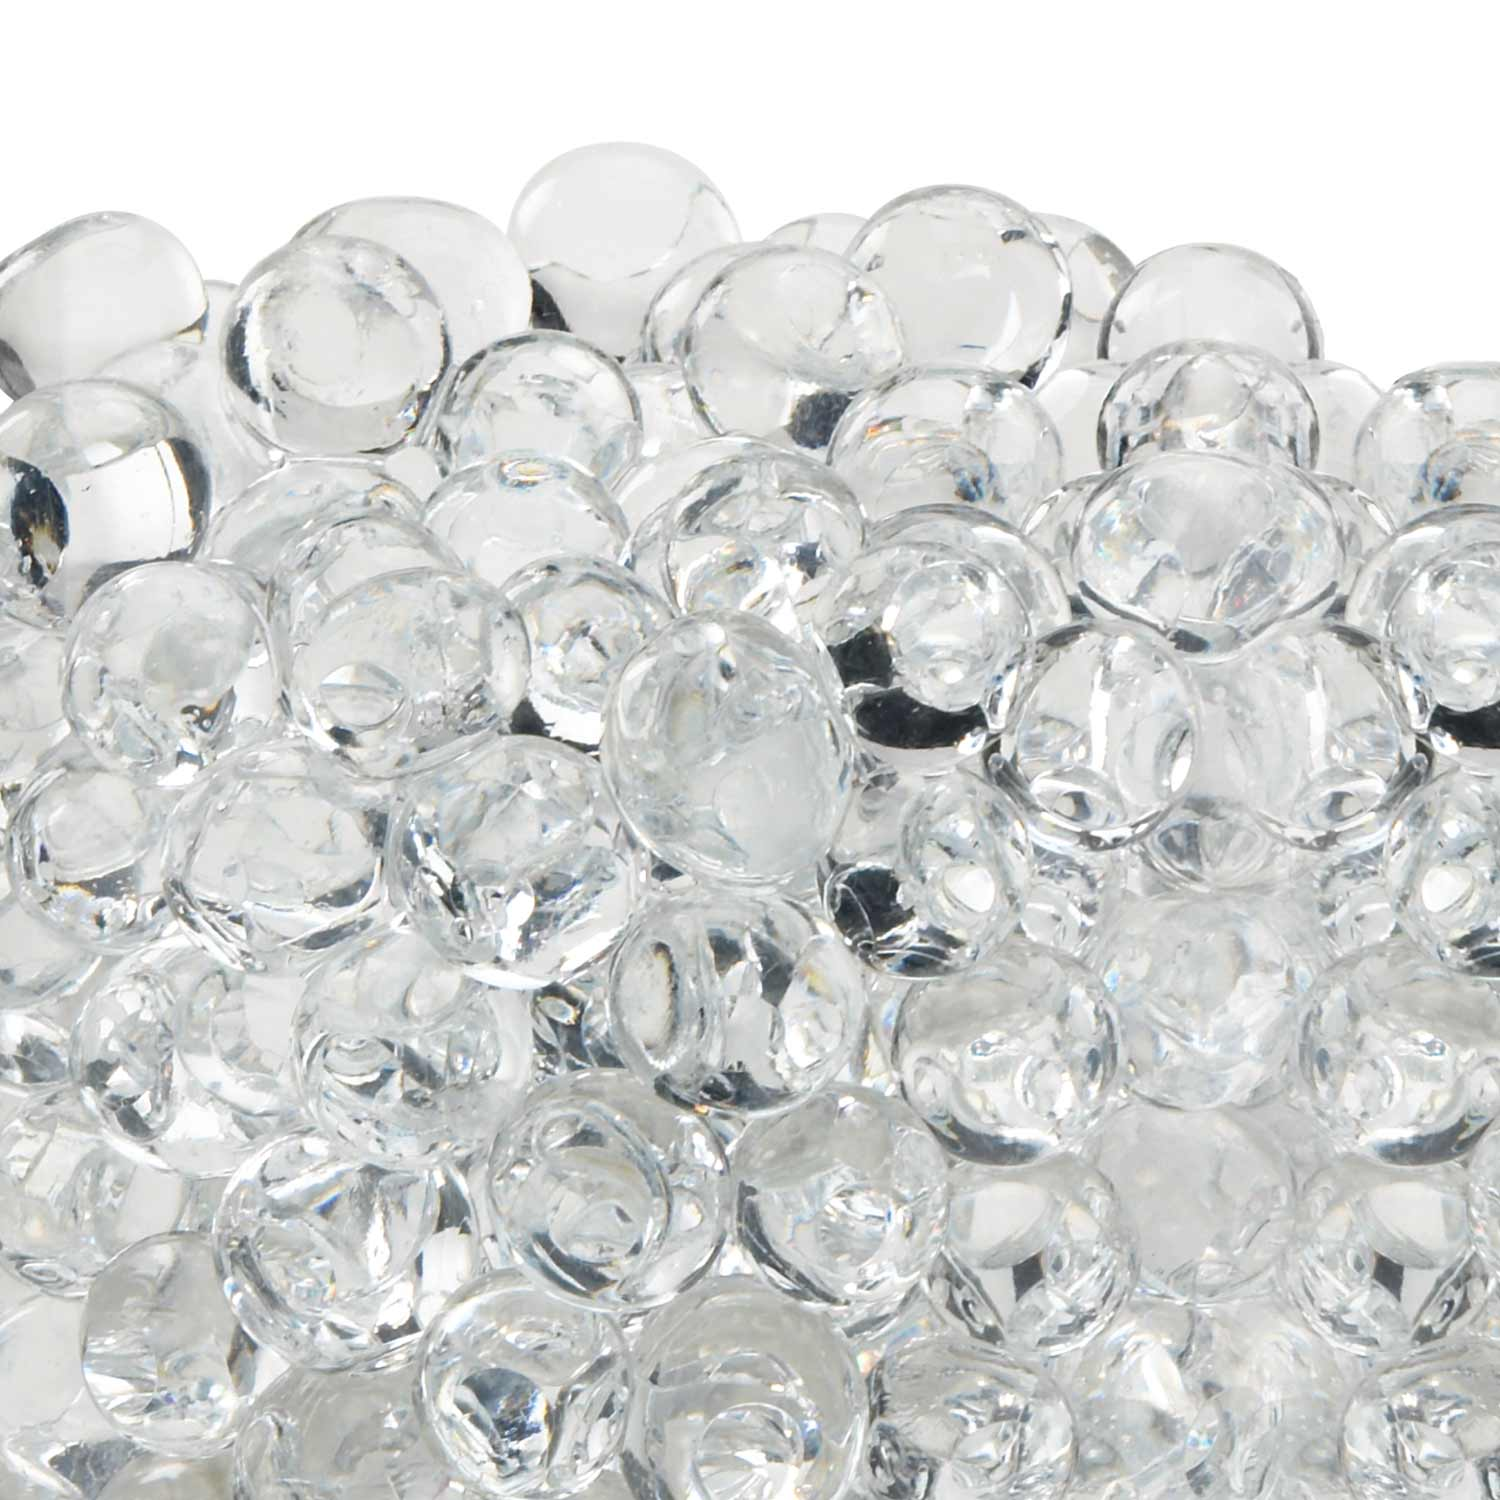 Clear Marble Rocks : Jelly marbles clear spheres steve spangler science